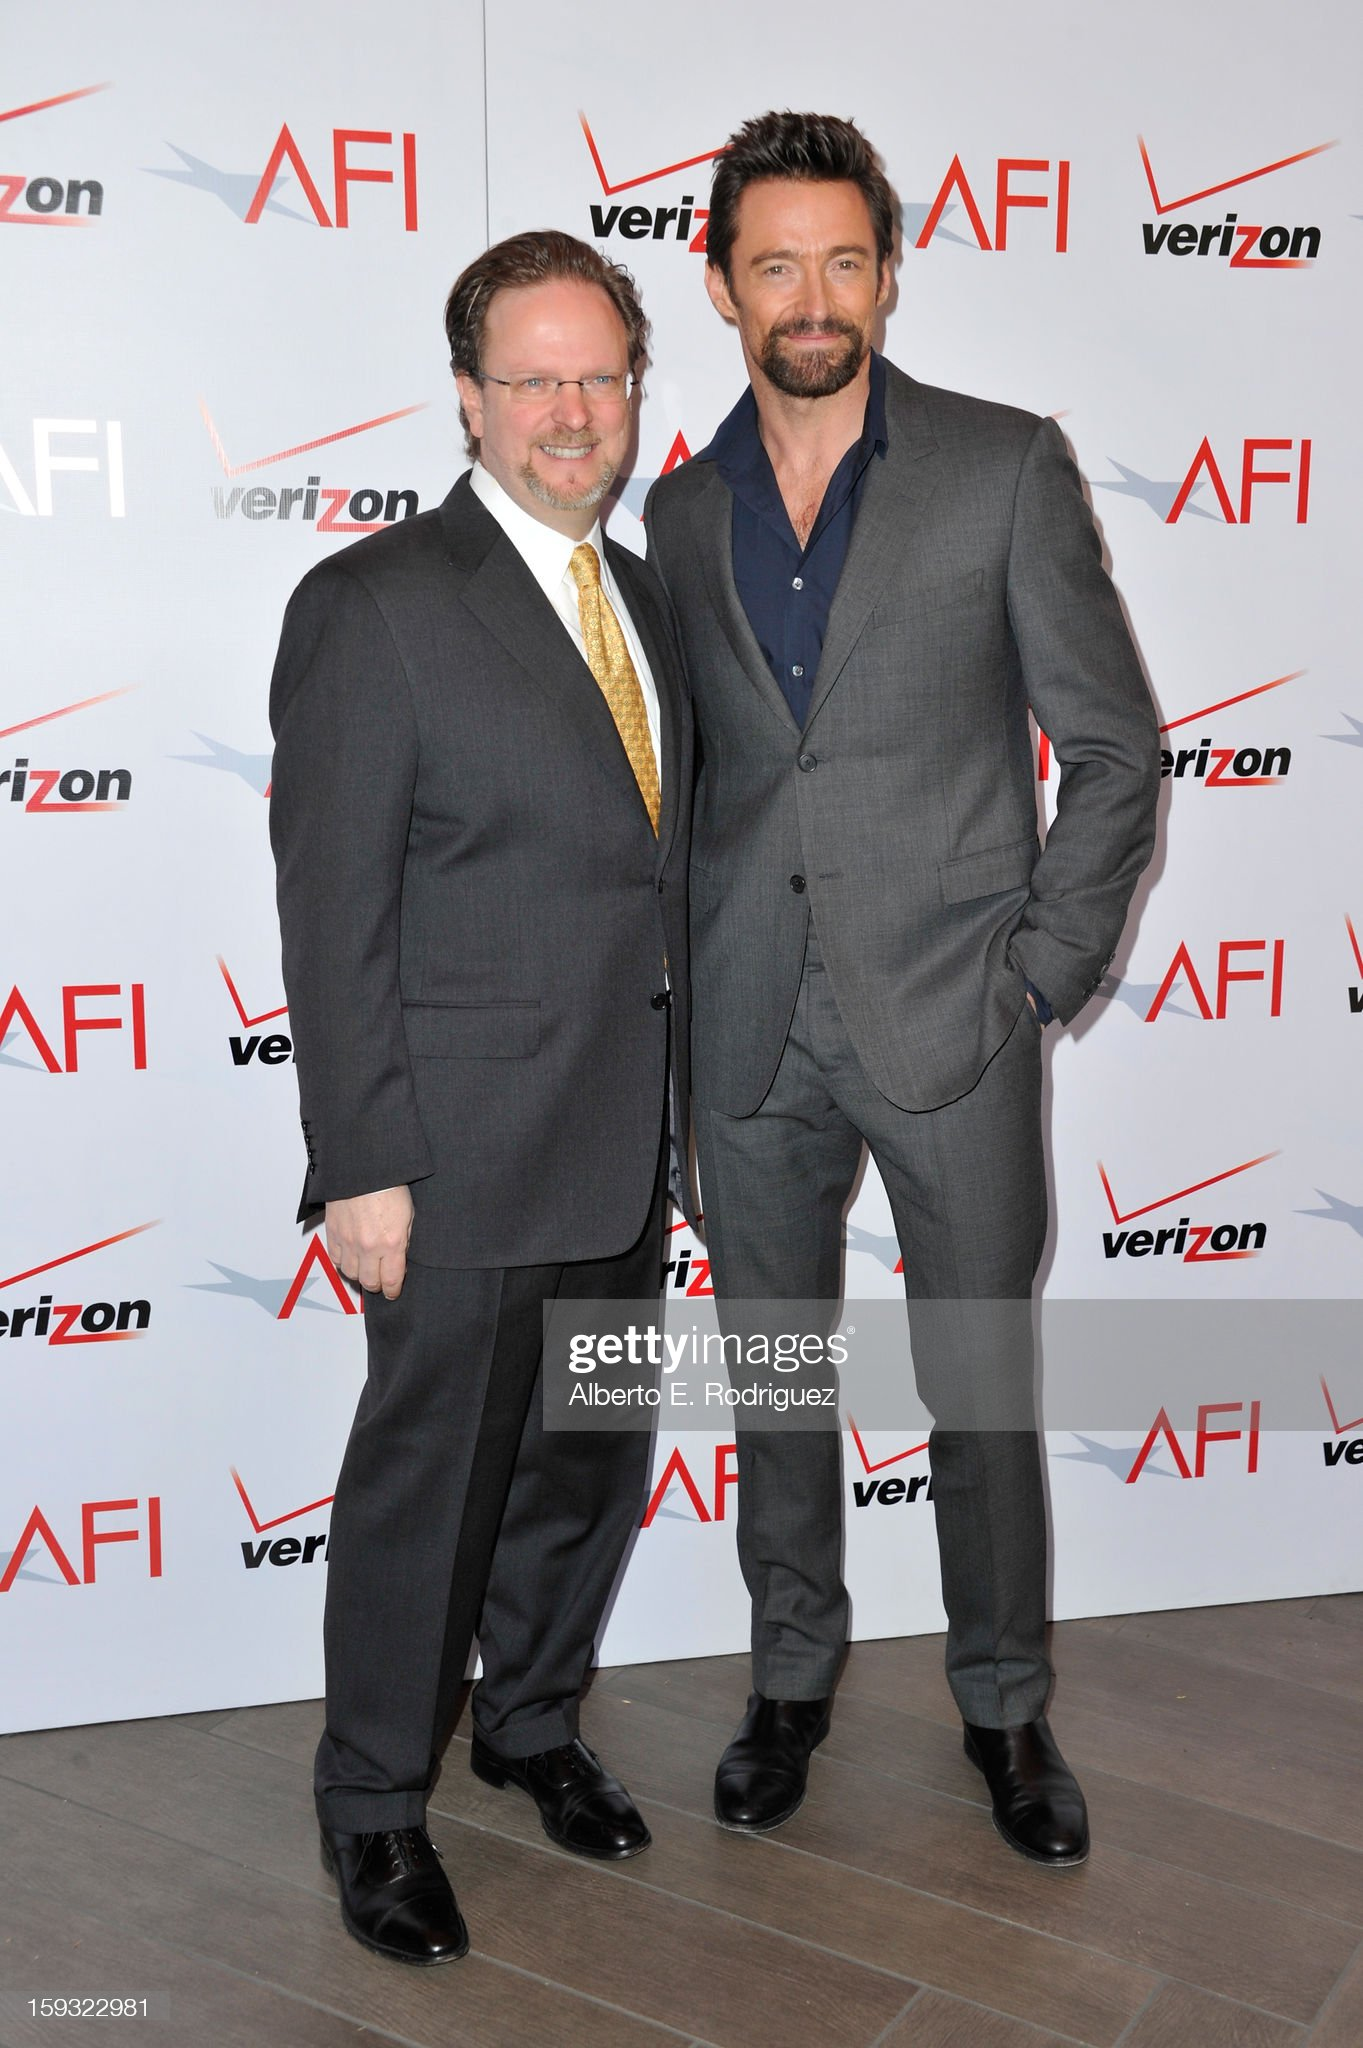 ¿Cuánto mide Bob Gazzale? - Real height President-bob-gazzale-and-actor-hugh-jackman-attend-the-13th-annual-picture-id159322981?s=2048x2048